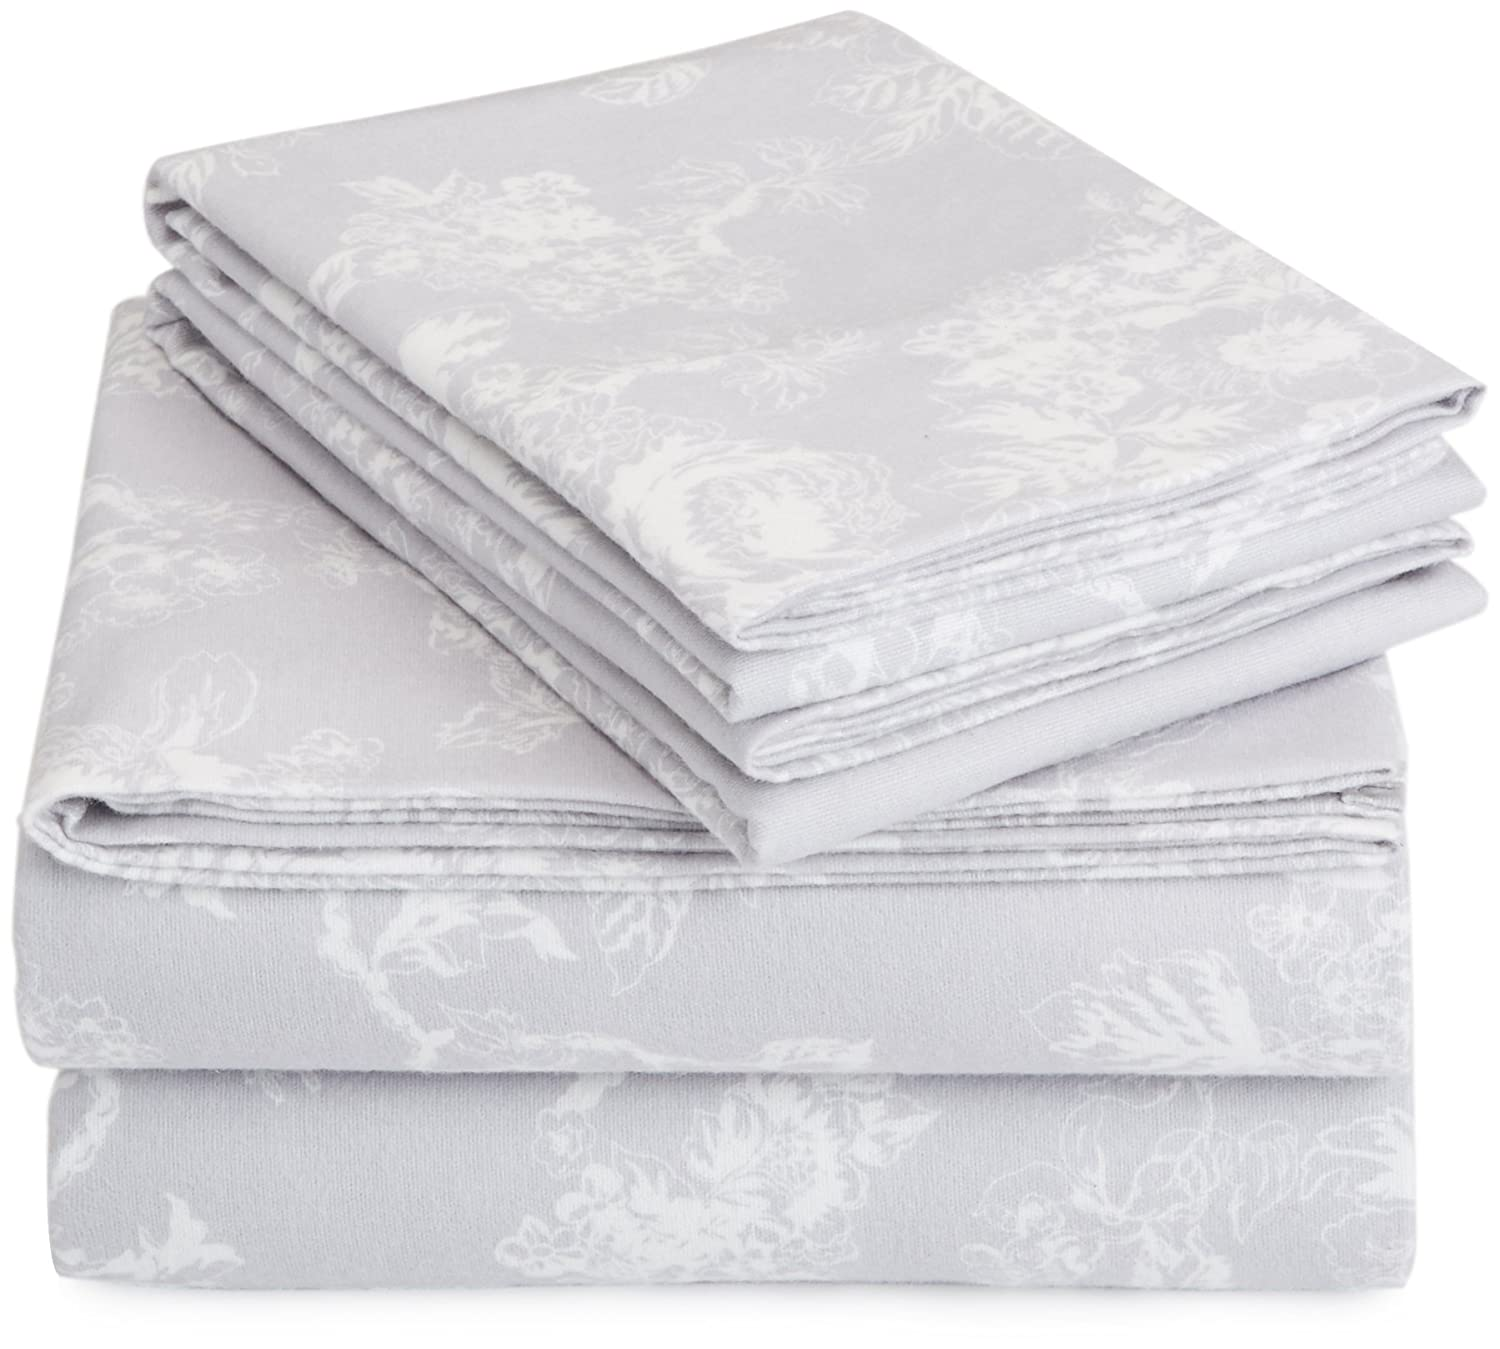 AmazonBasics Printed Lightweight Flannel Sheet Set - Queen, Floral Grey